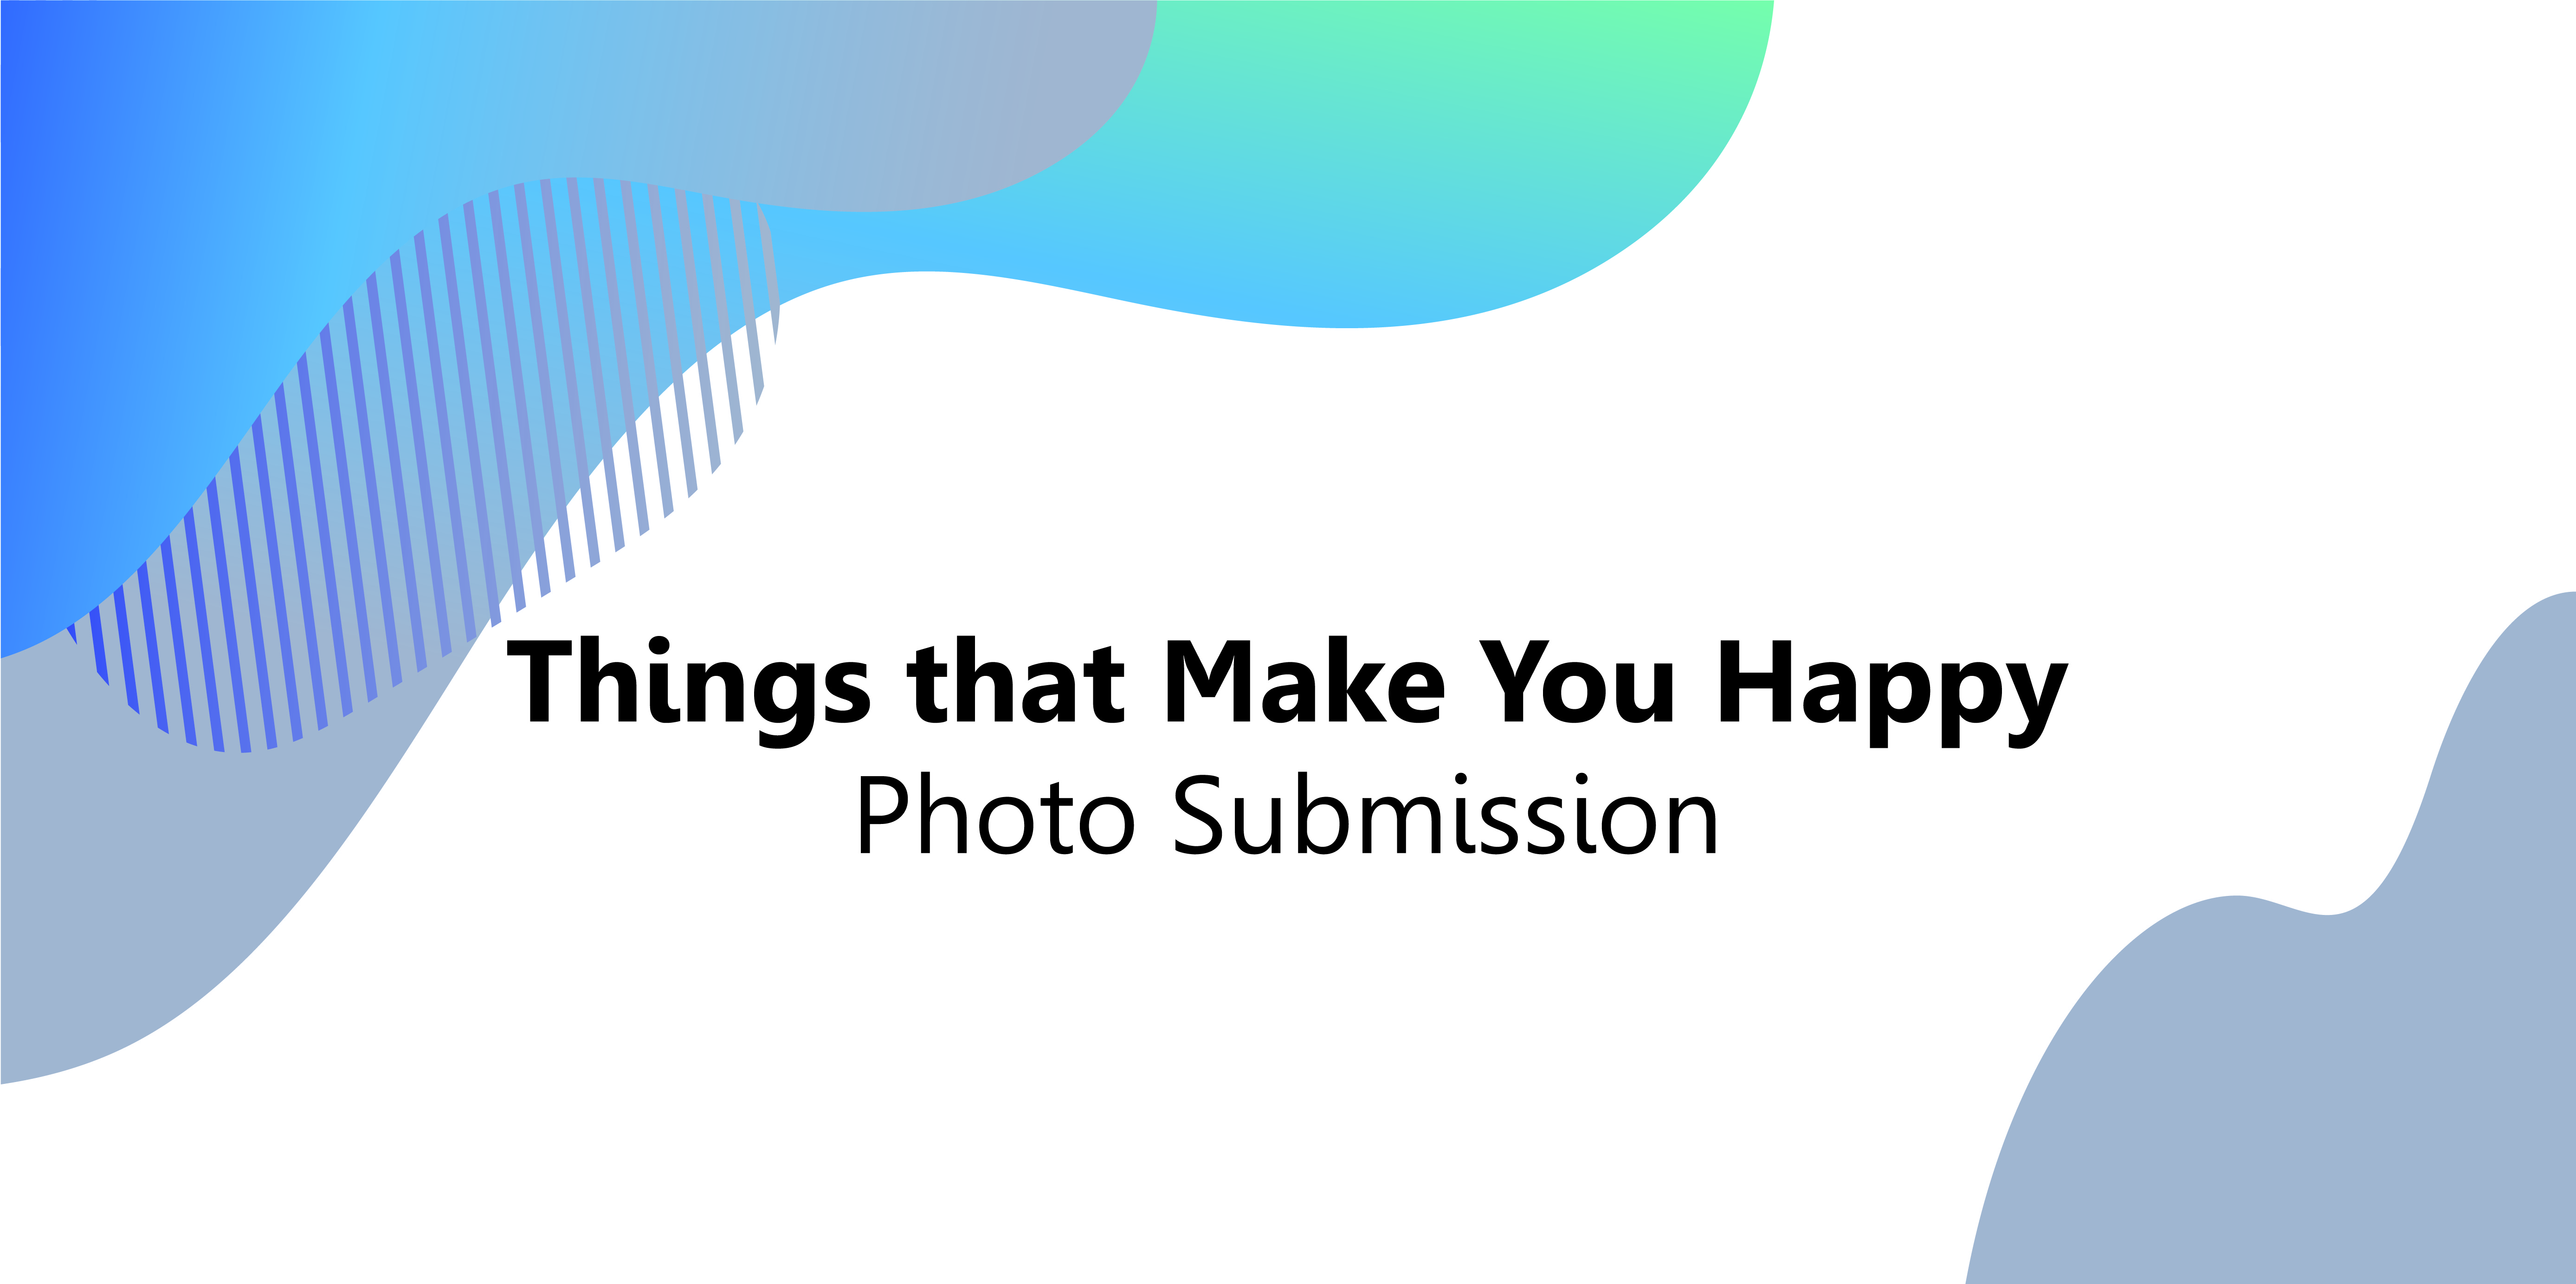 Things that Make You Happy Submission Page